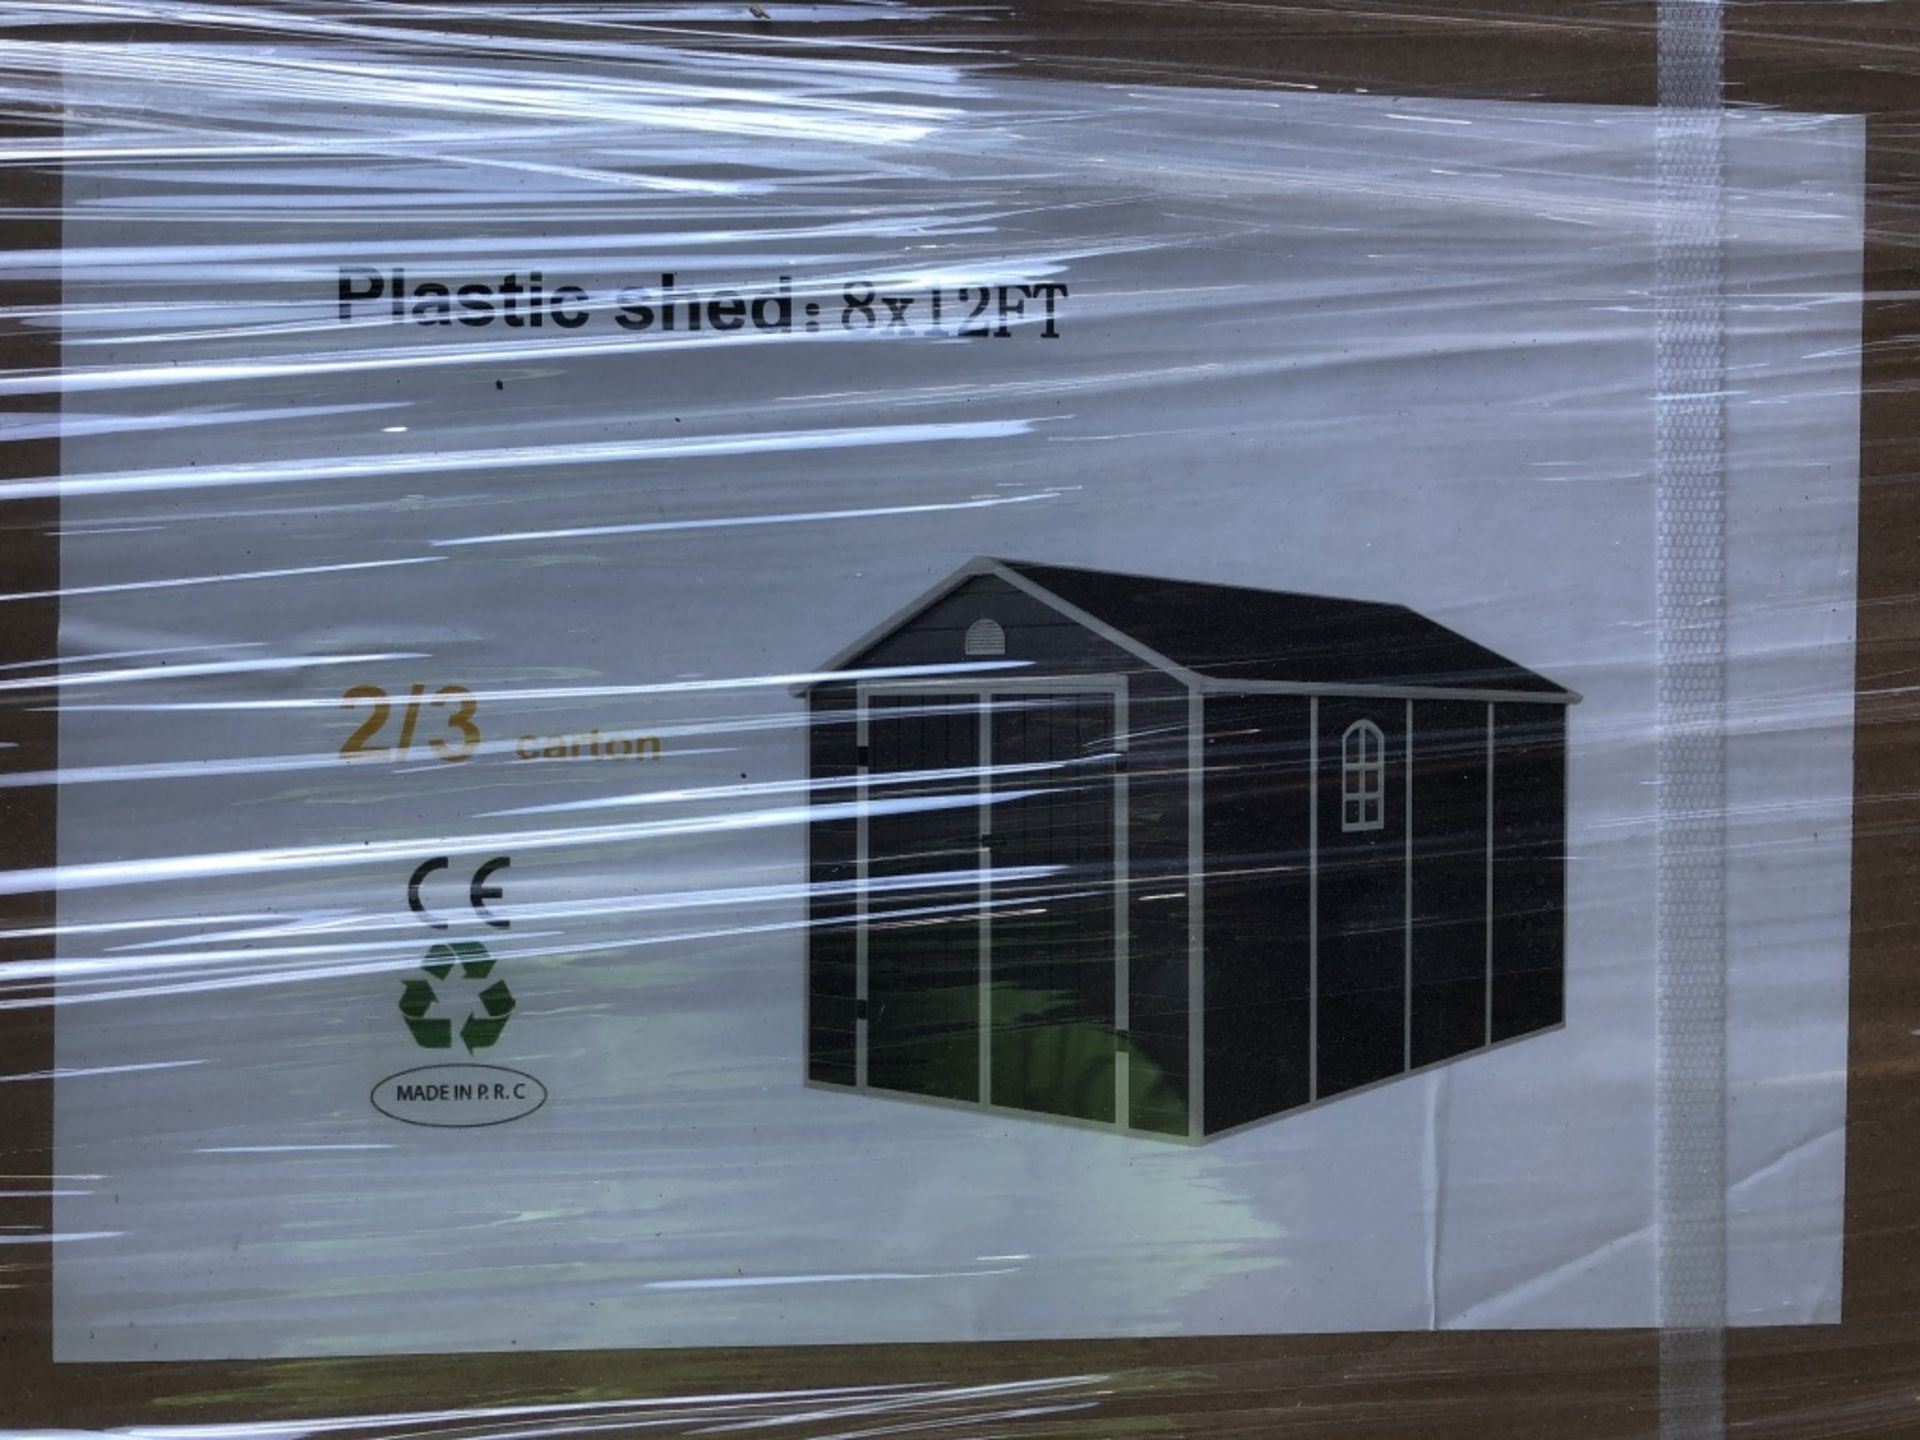 Lot 170 - Plastic 8ft x 12ft Storage Shed